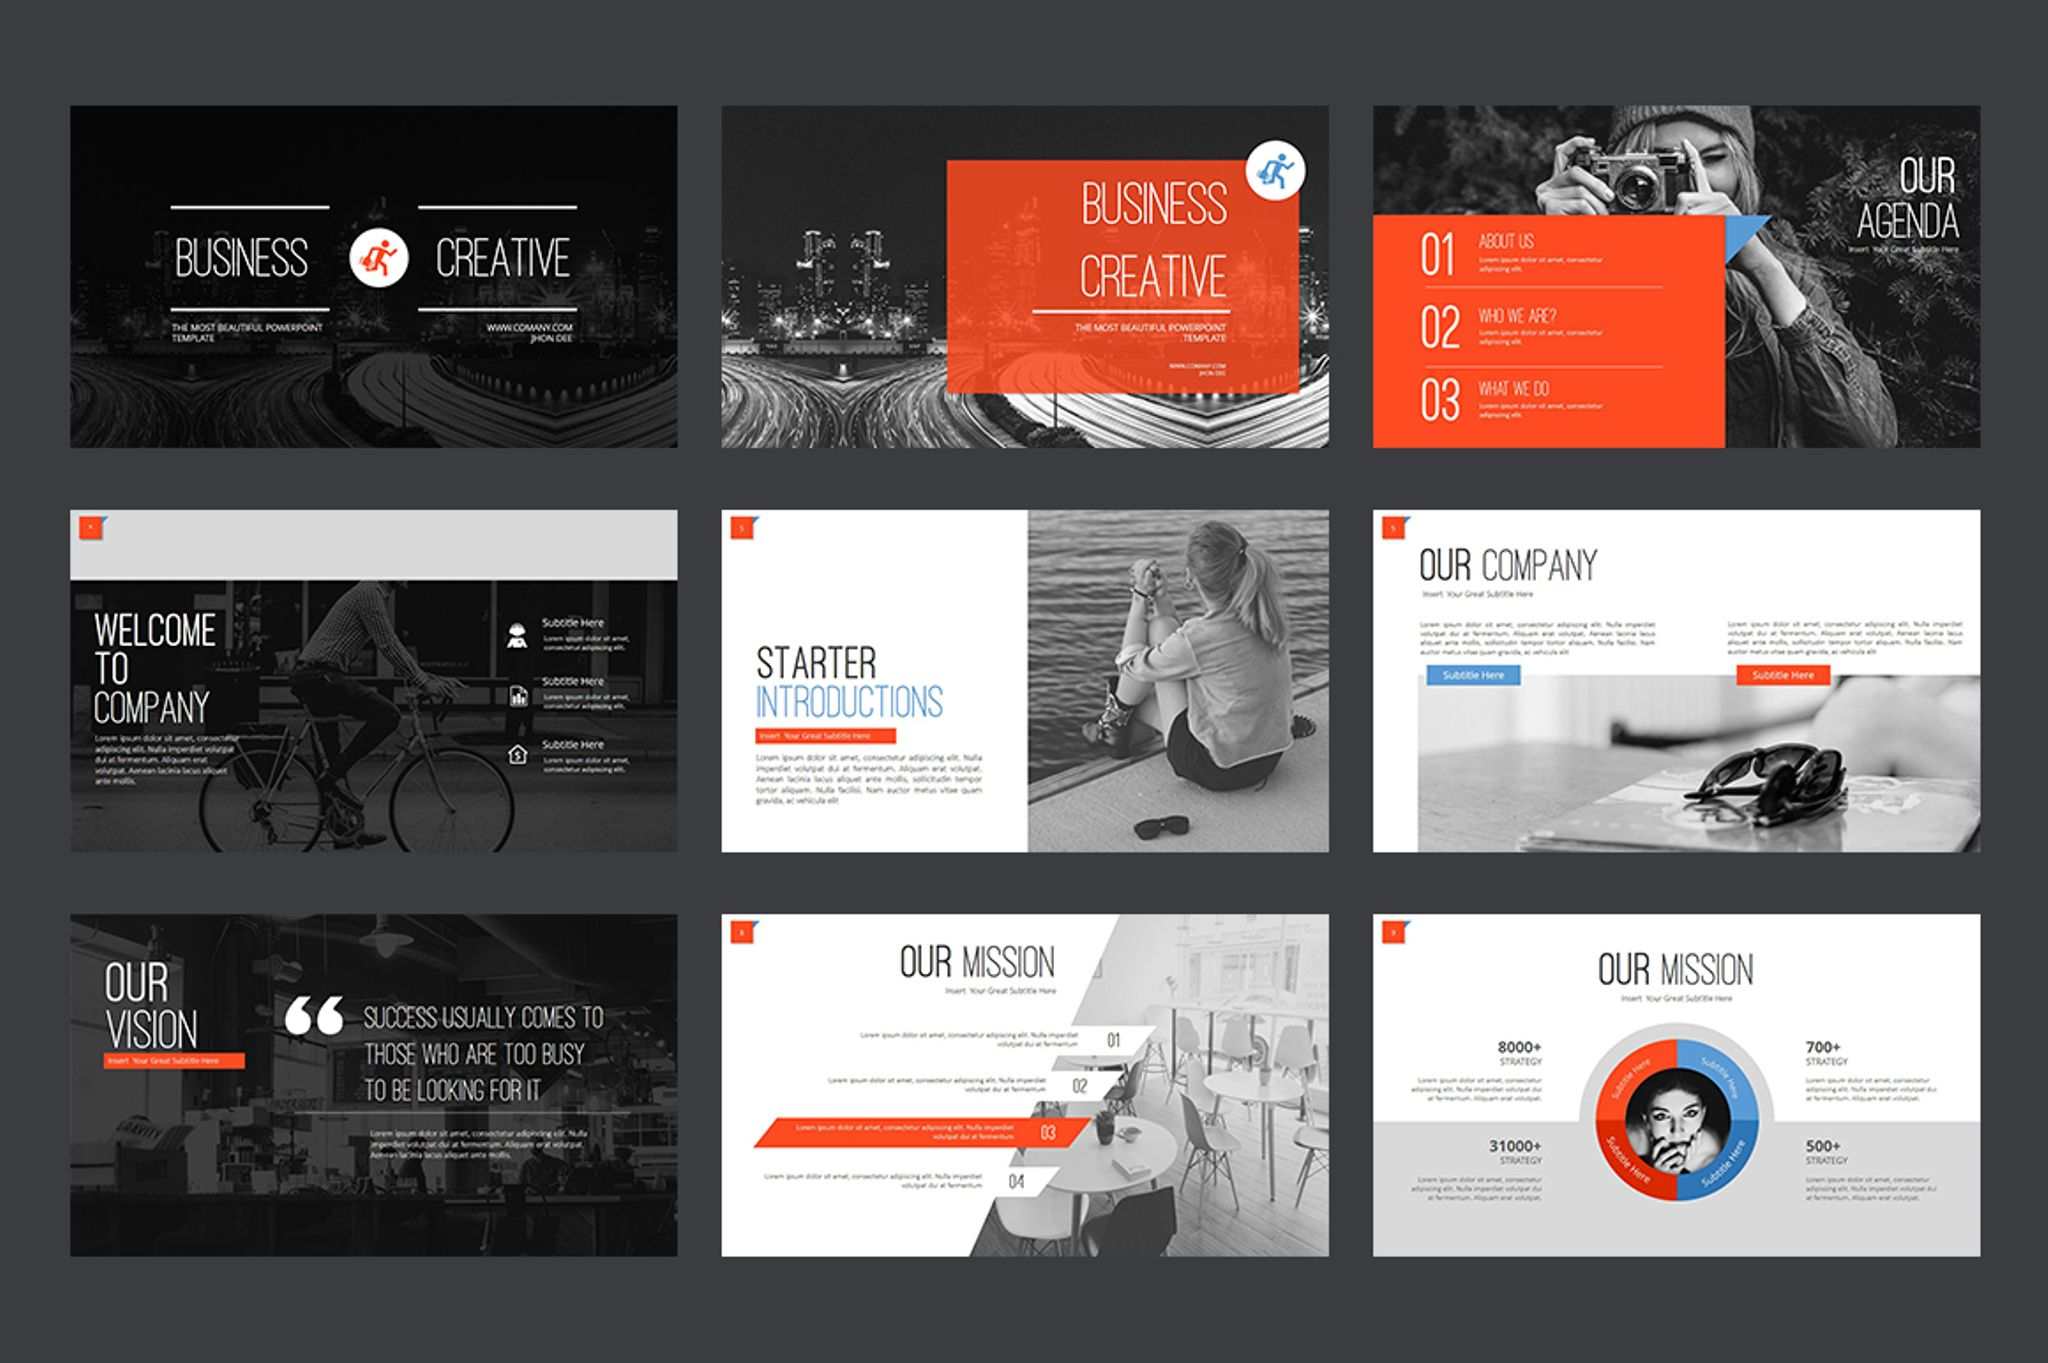 Marketing agency powerpoint template 64617 business creative powerpoint template big screenshot toneelgroepblik